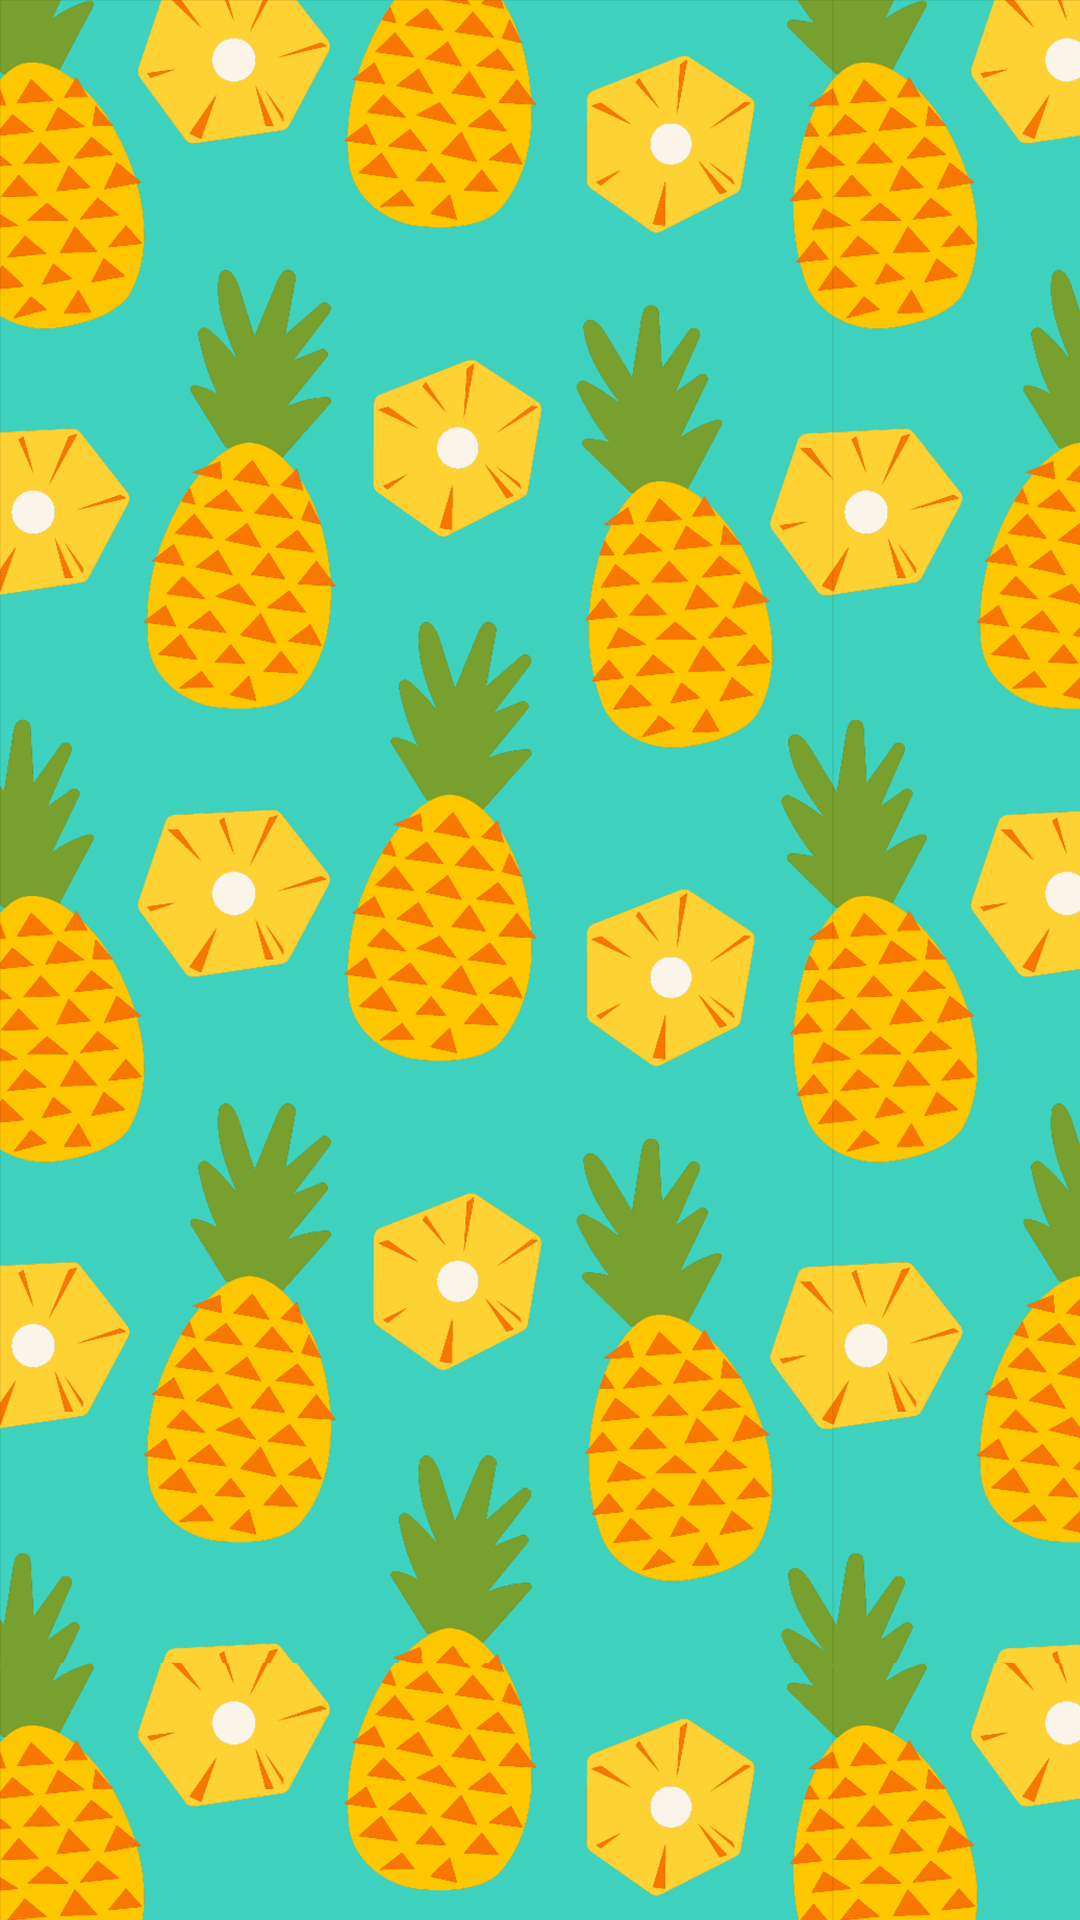 Wallpaper iphone pineapple - 1mb